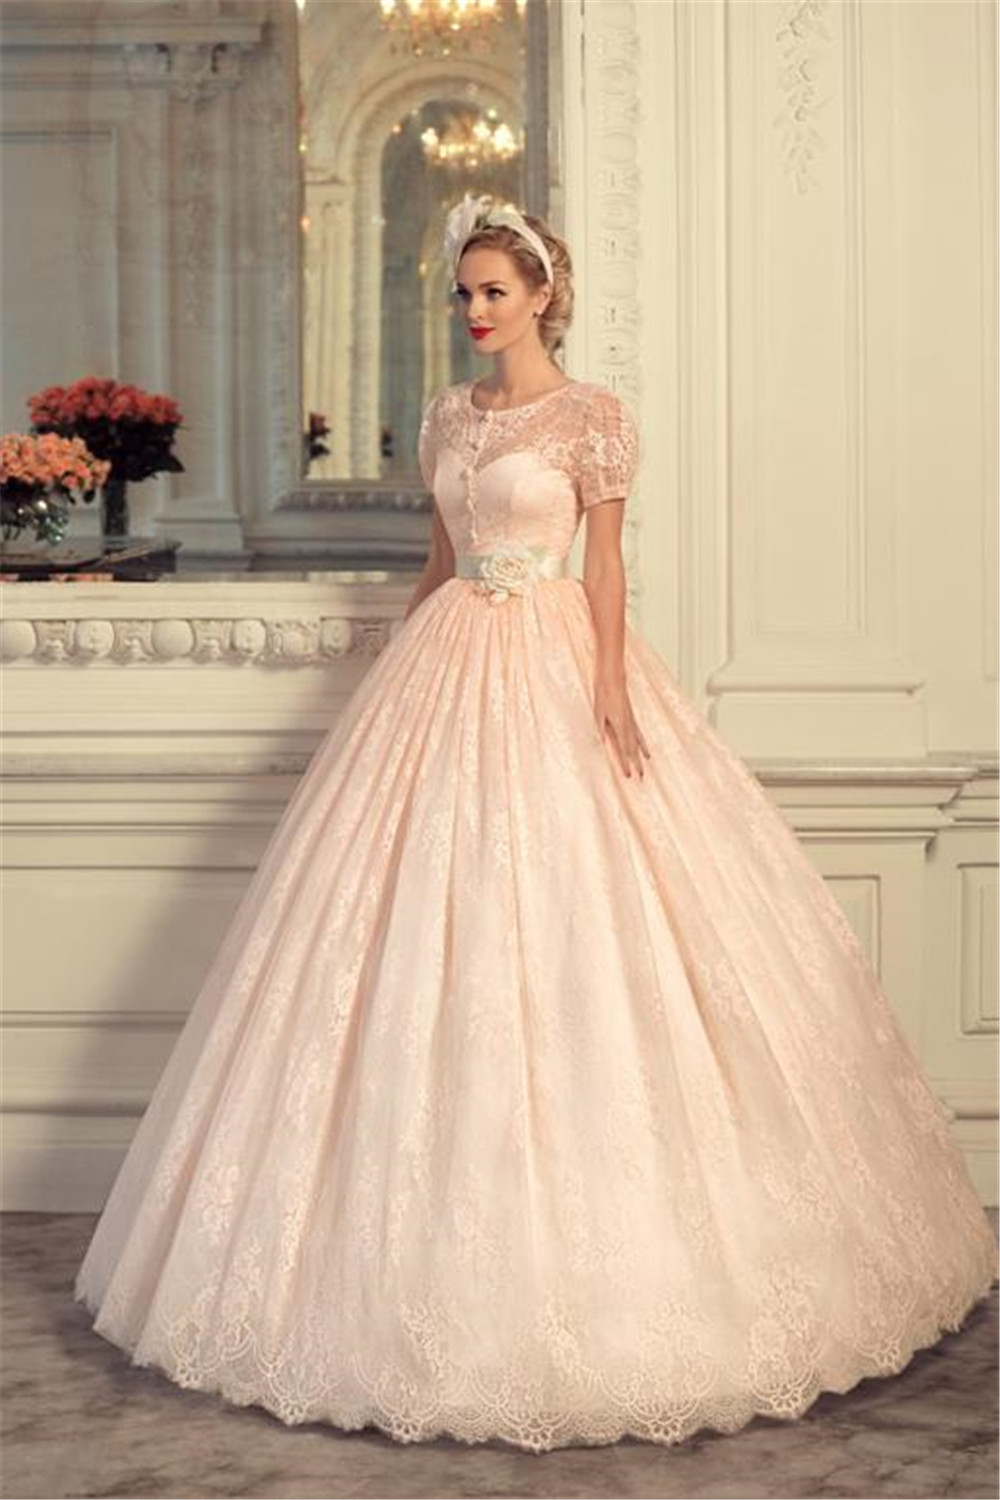 Pink Wedding Dresses Princess : Pink lace ball gown princess wedding dresses sashes bridal gowns